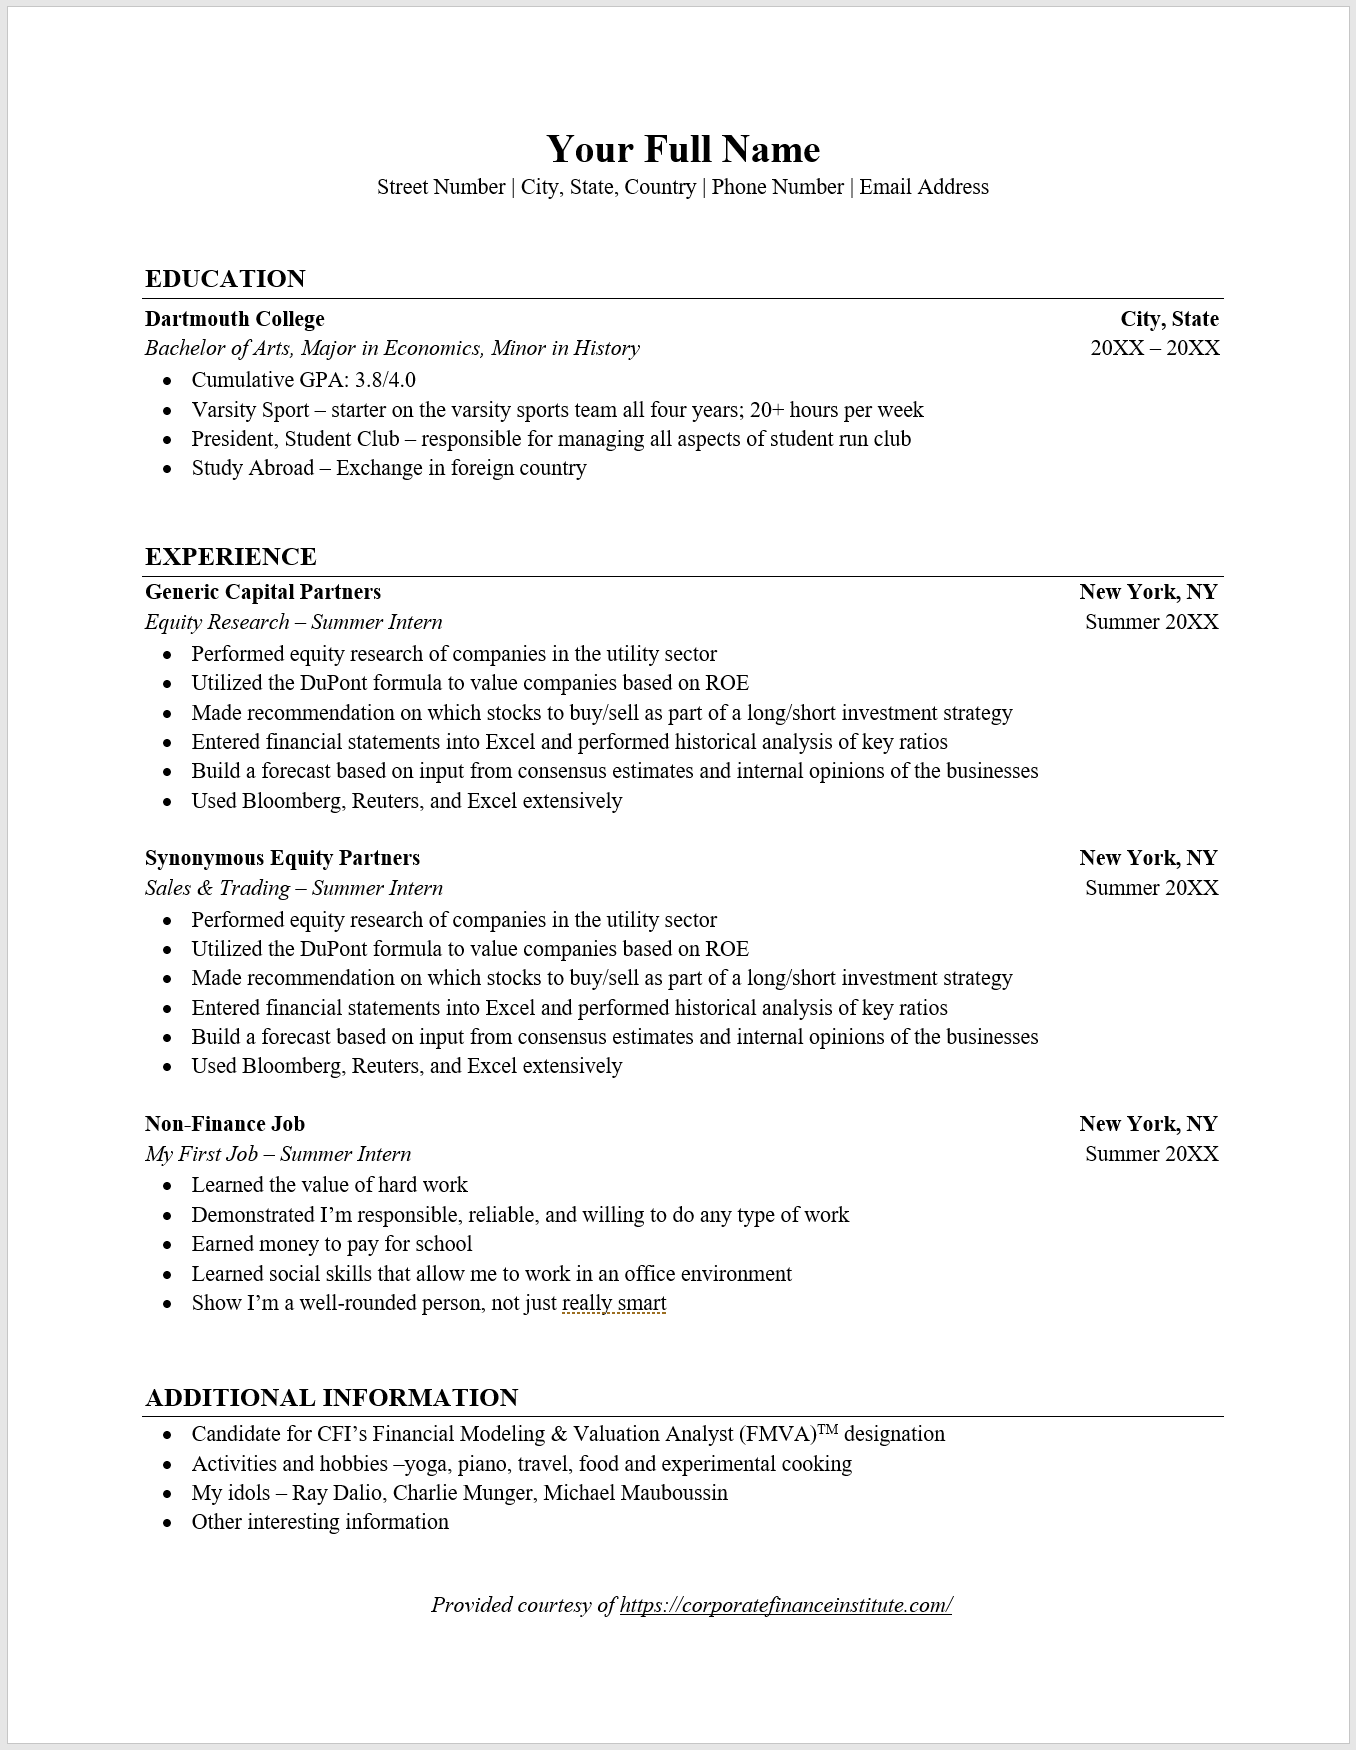 Best Font for Resume - Examples, List of the 5 Best Resume Fonts